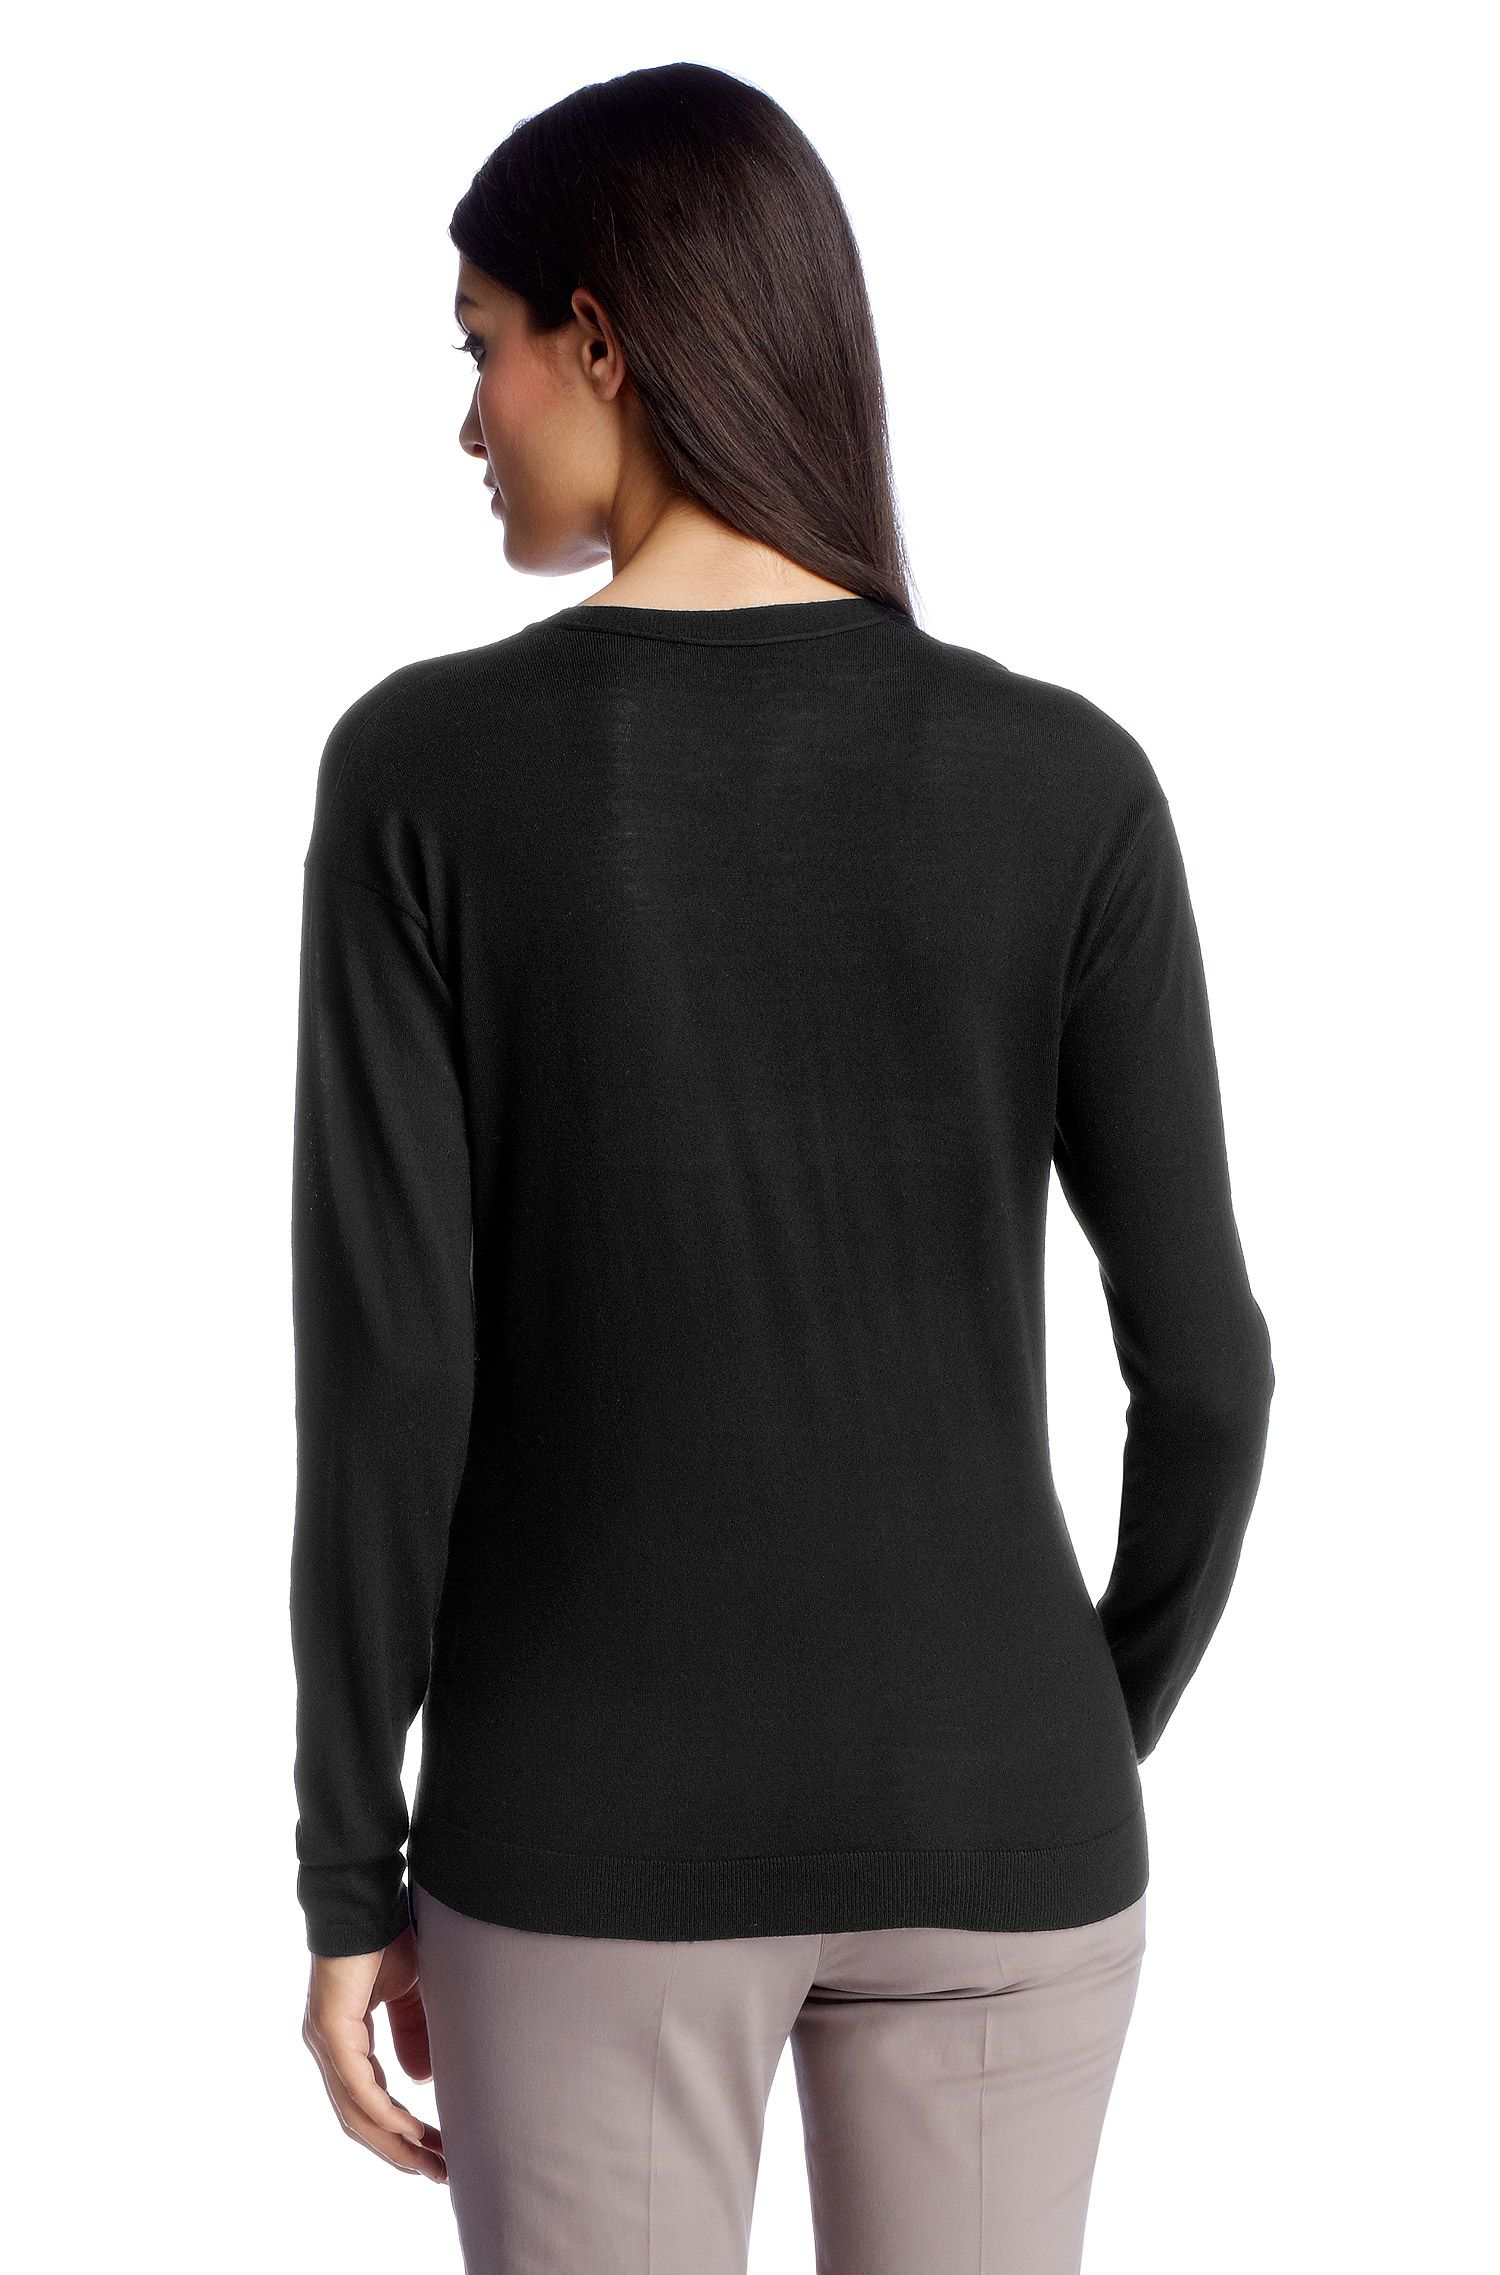 Pull-over en laine vierge, F4821